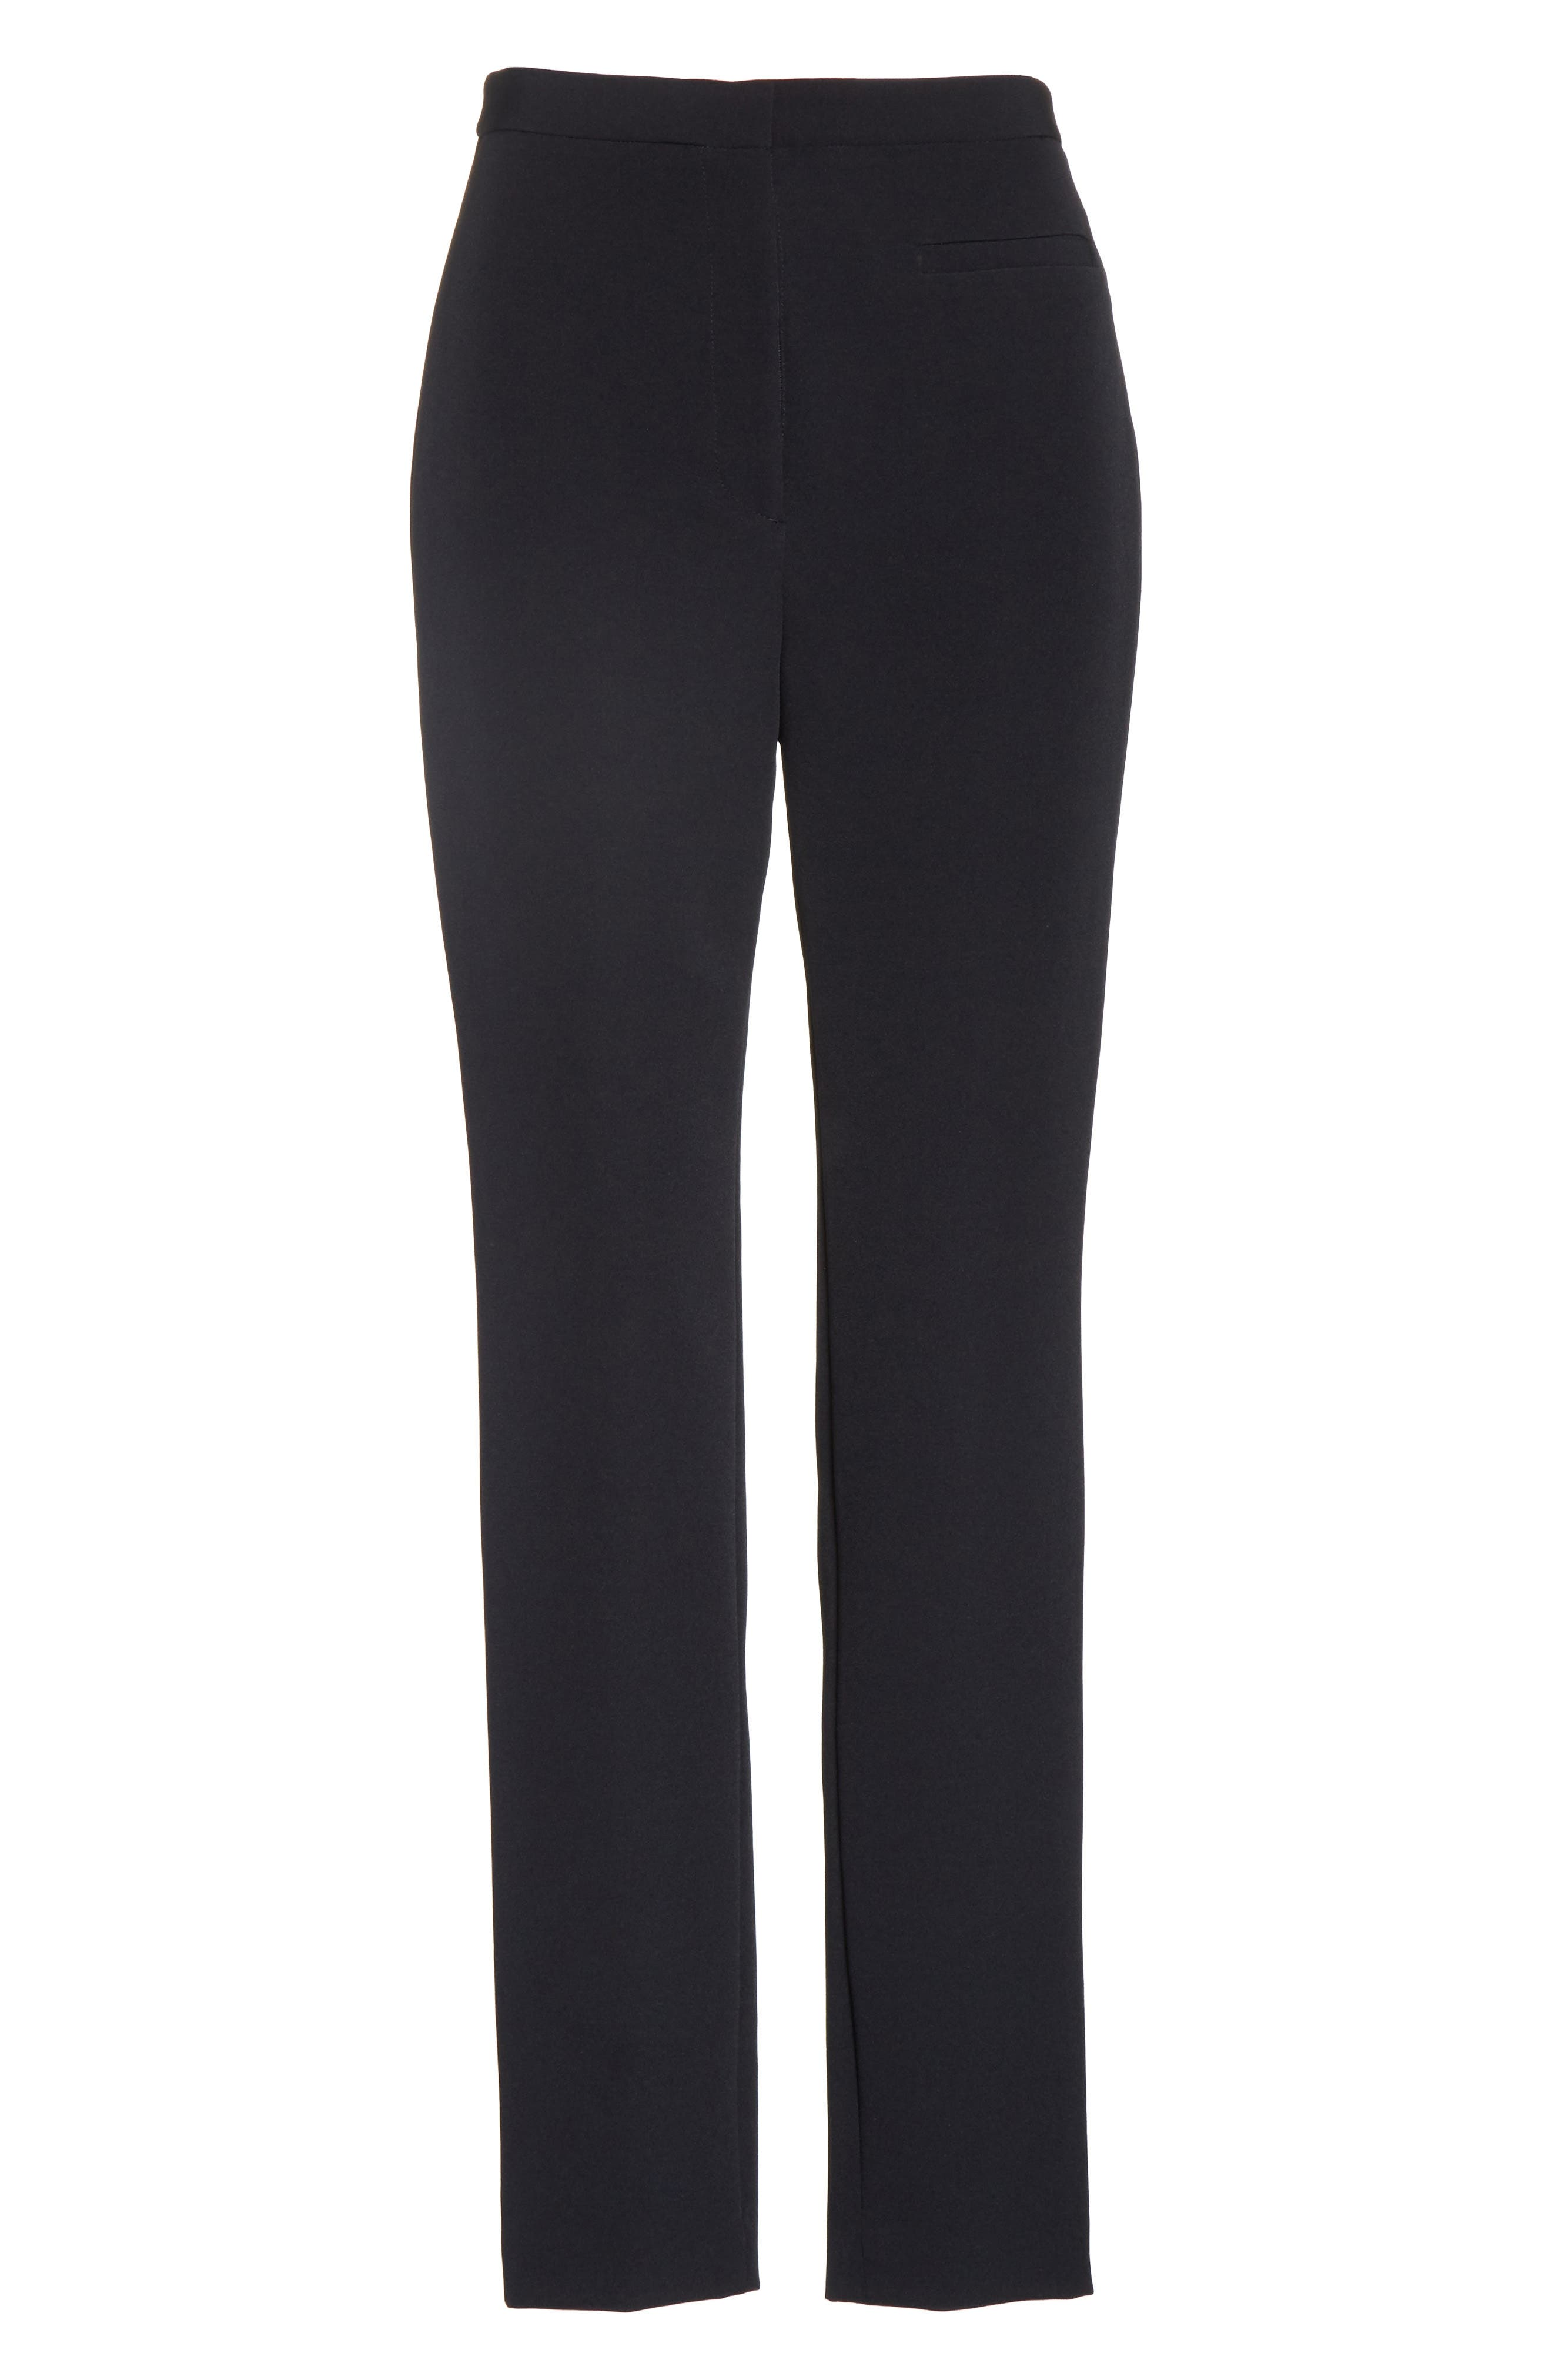 Stretch Crepe High Waist Skinny Pants,                             Alternate thumbnail 6, color,                             Black